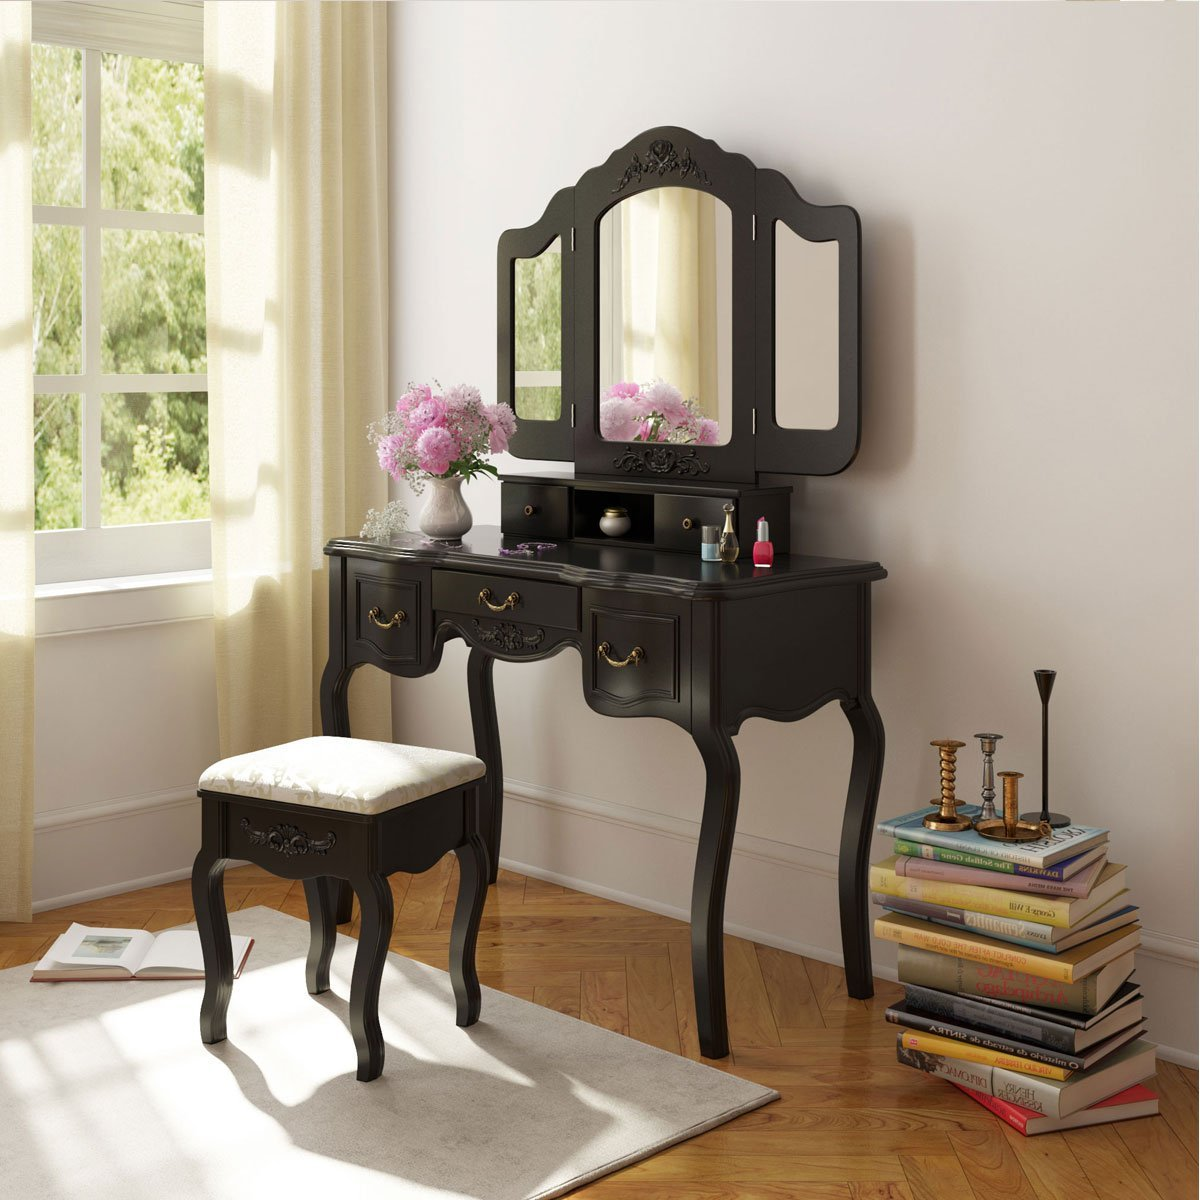 Tribesigns On Twitter Tribesigns French Vintage Black Vanity Dressing Table Set Makeup Desk With Stool Mirror Bedroom Color Black Https T Co 49gtcjieem Https T Co 4hnso2vwdg